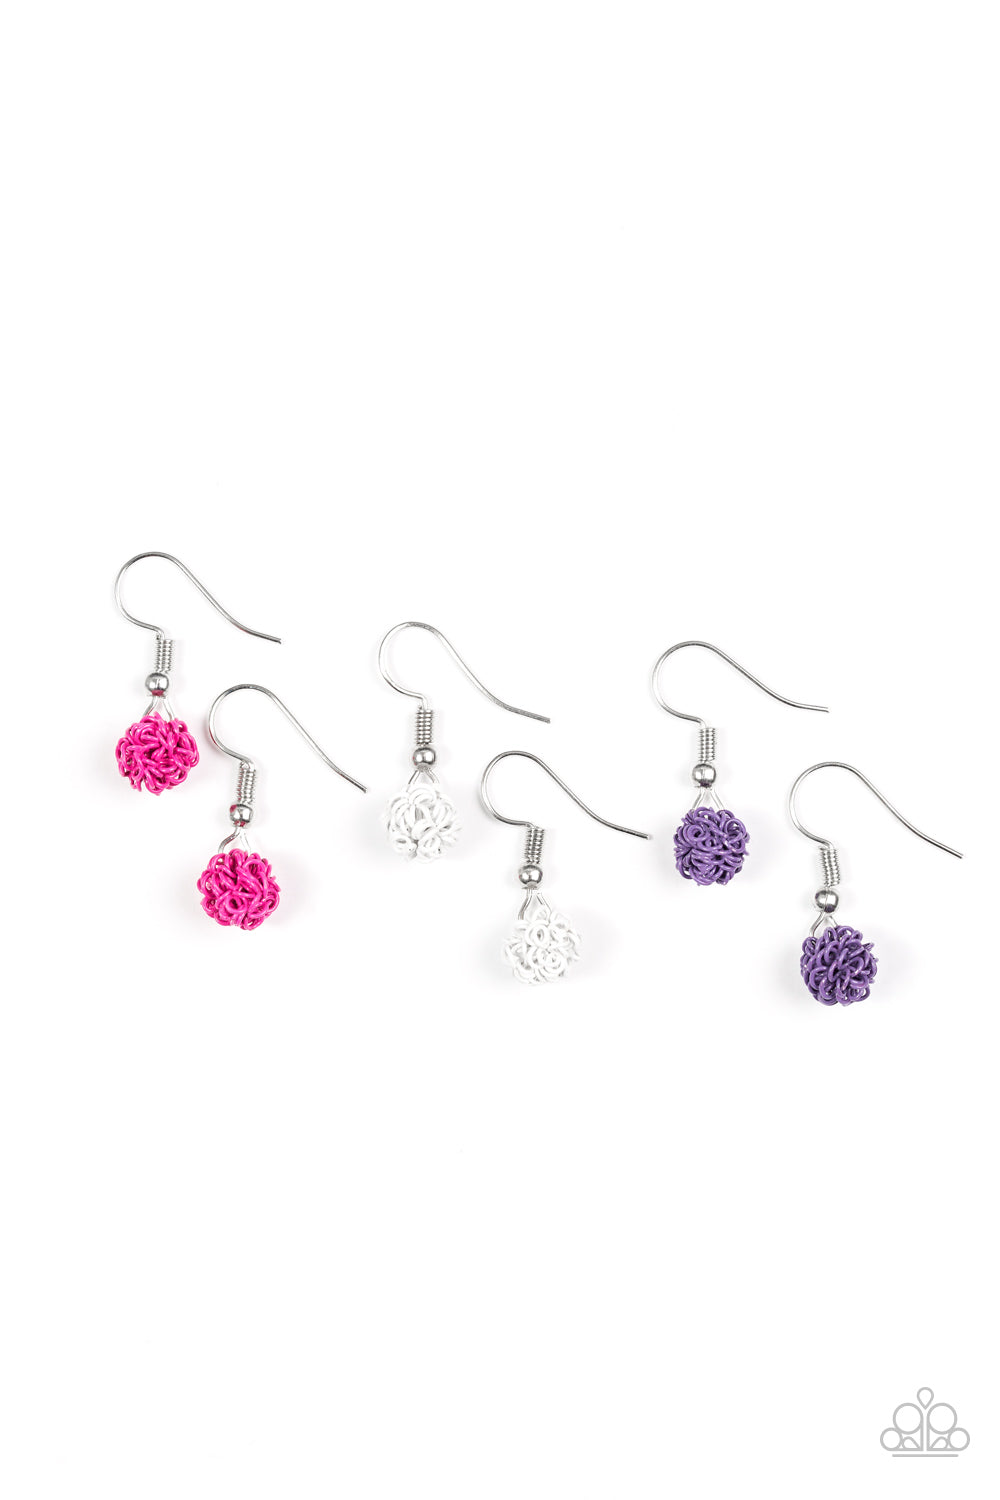 Abstract Bead Earrings - Paparazzi Starlet Shimmer - Pink Dragon Jewels